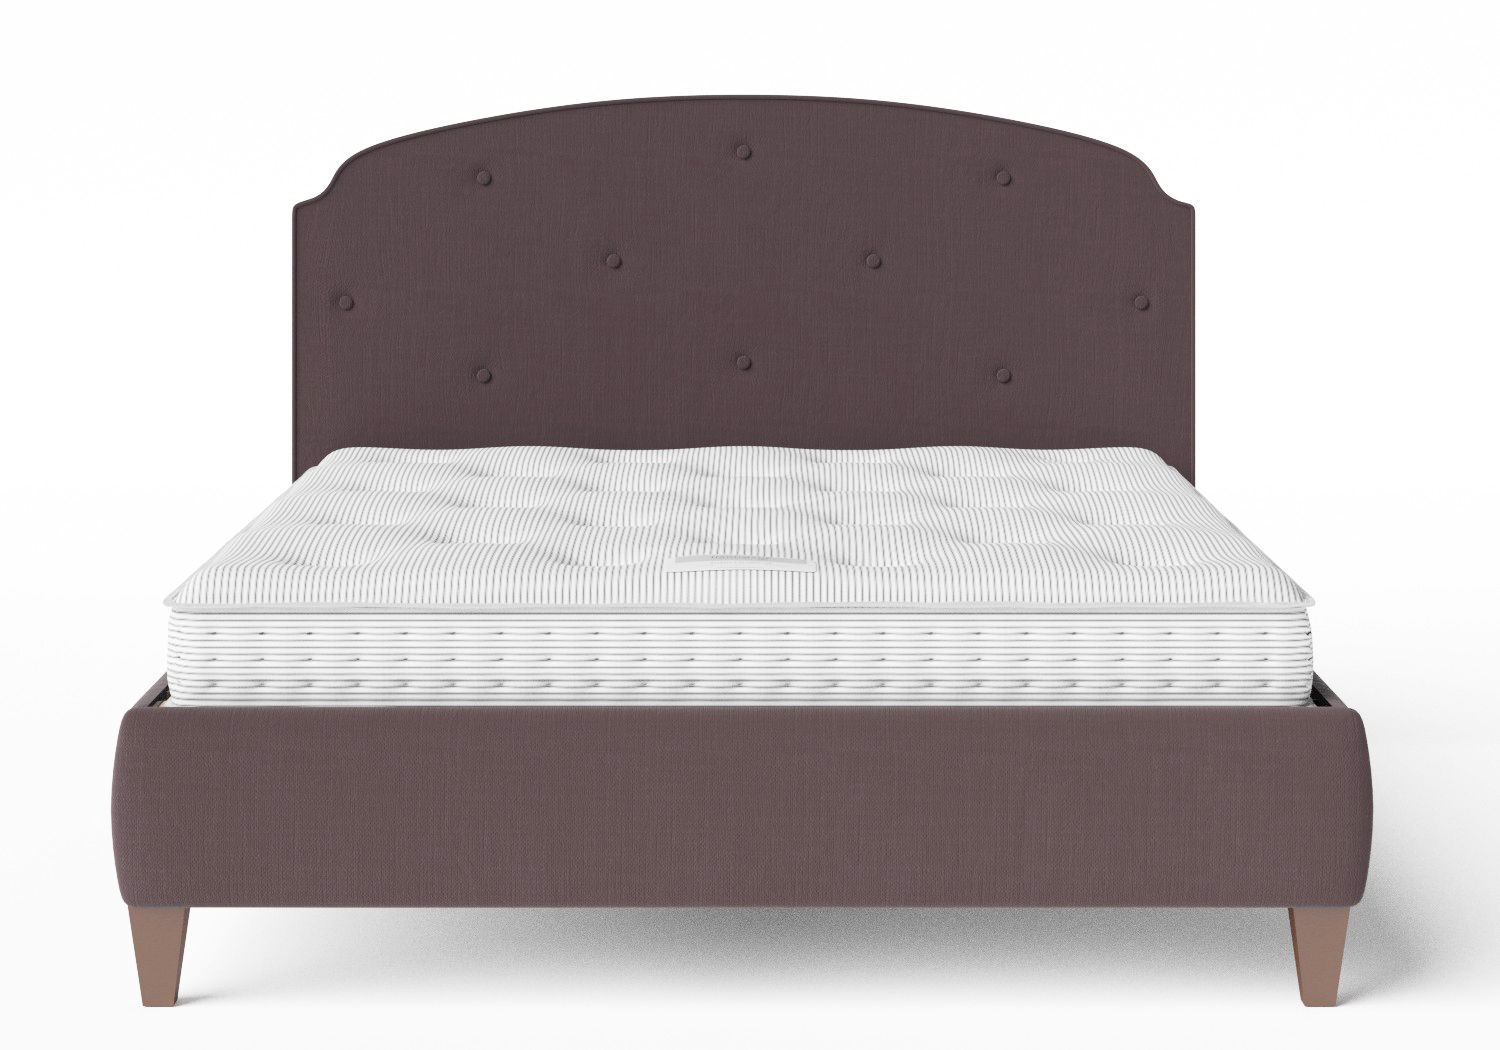 Lide Upholstered Bed in Aubergine fabric with buttoning shown with Juno 1 mattress